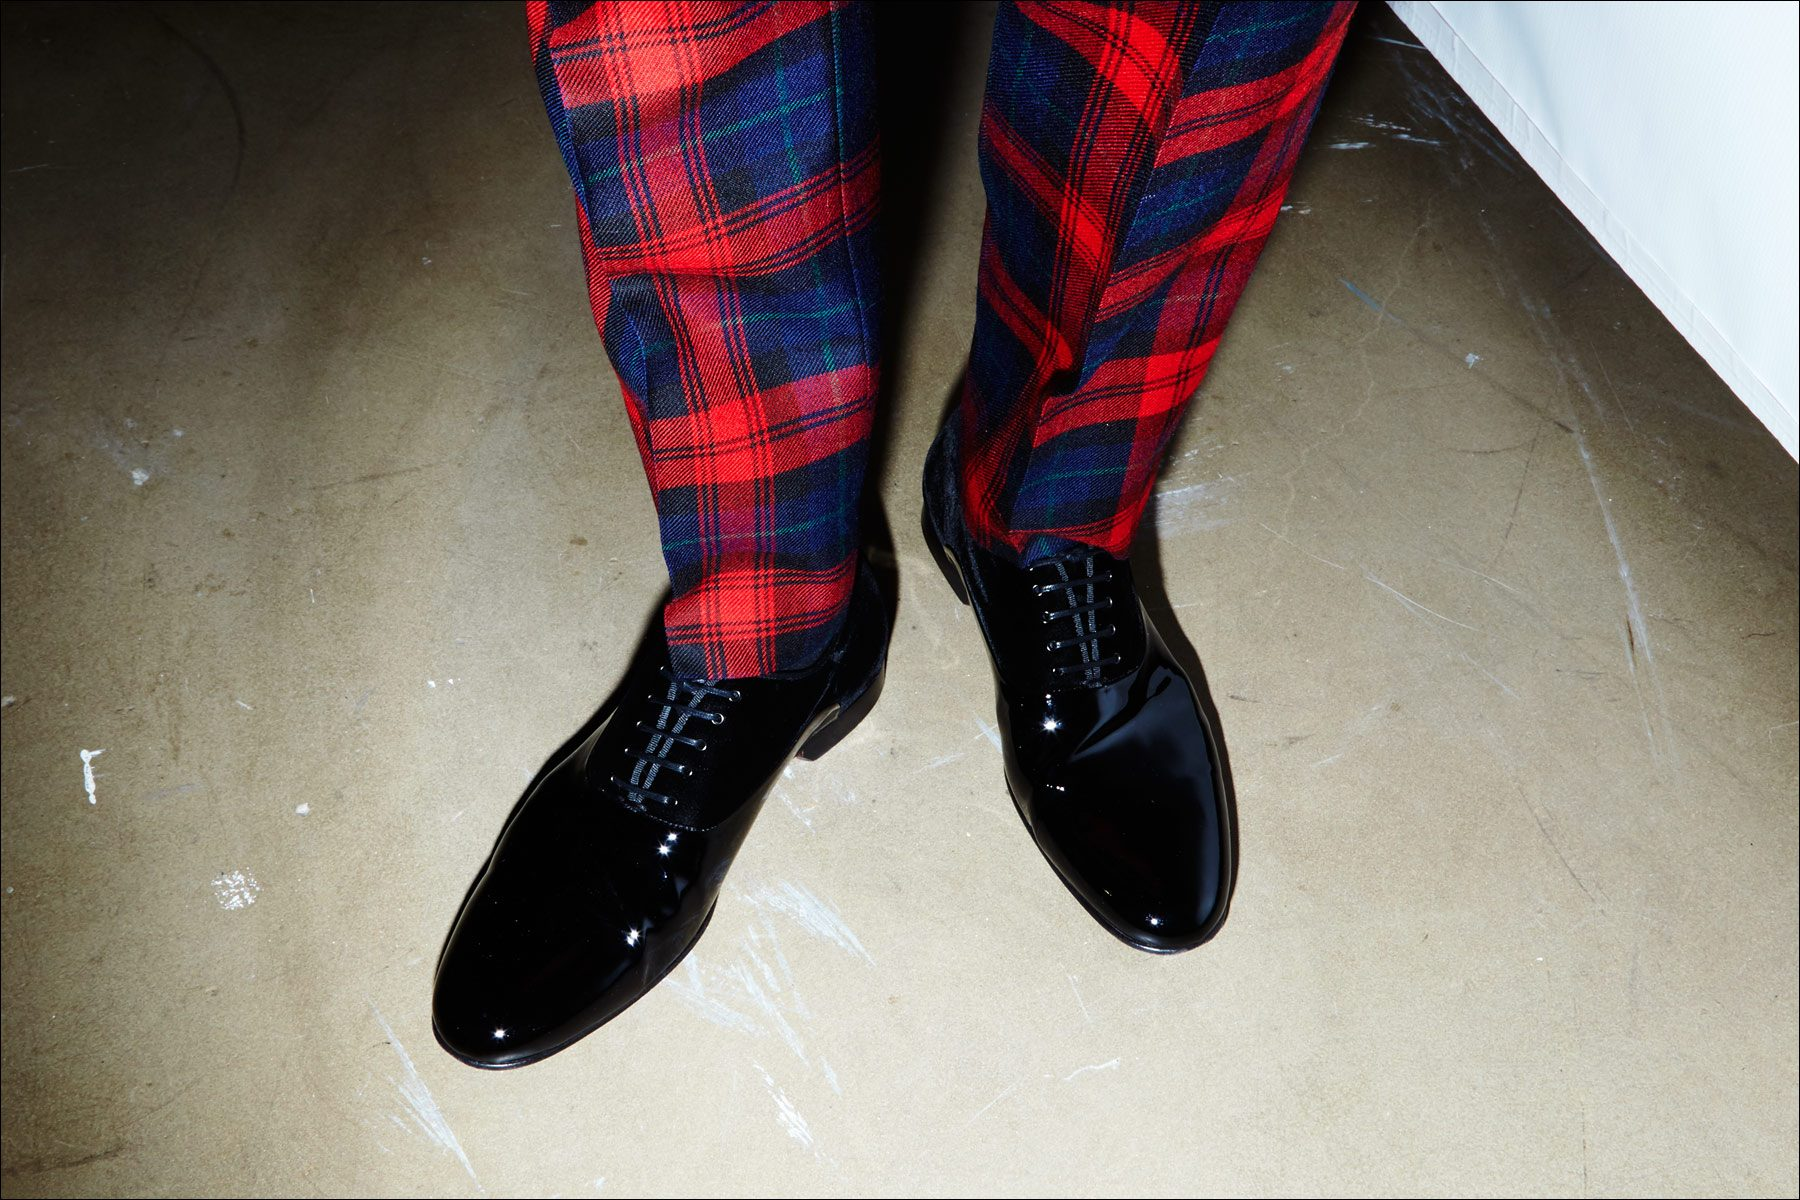 Tartan trousers worn with Johnson & Murphy dress shoes, snapped backstage at the David Hart Fall/Winter 2017 menswear show. Photography by Alexander Thompson for Ponyboy magazine.